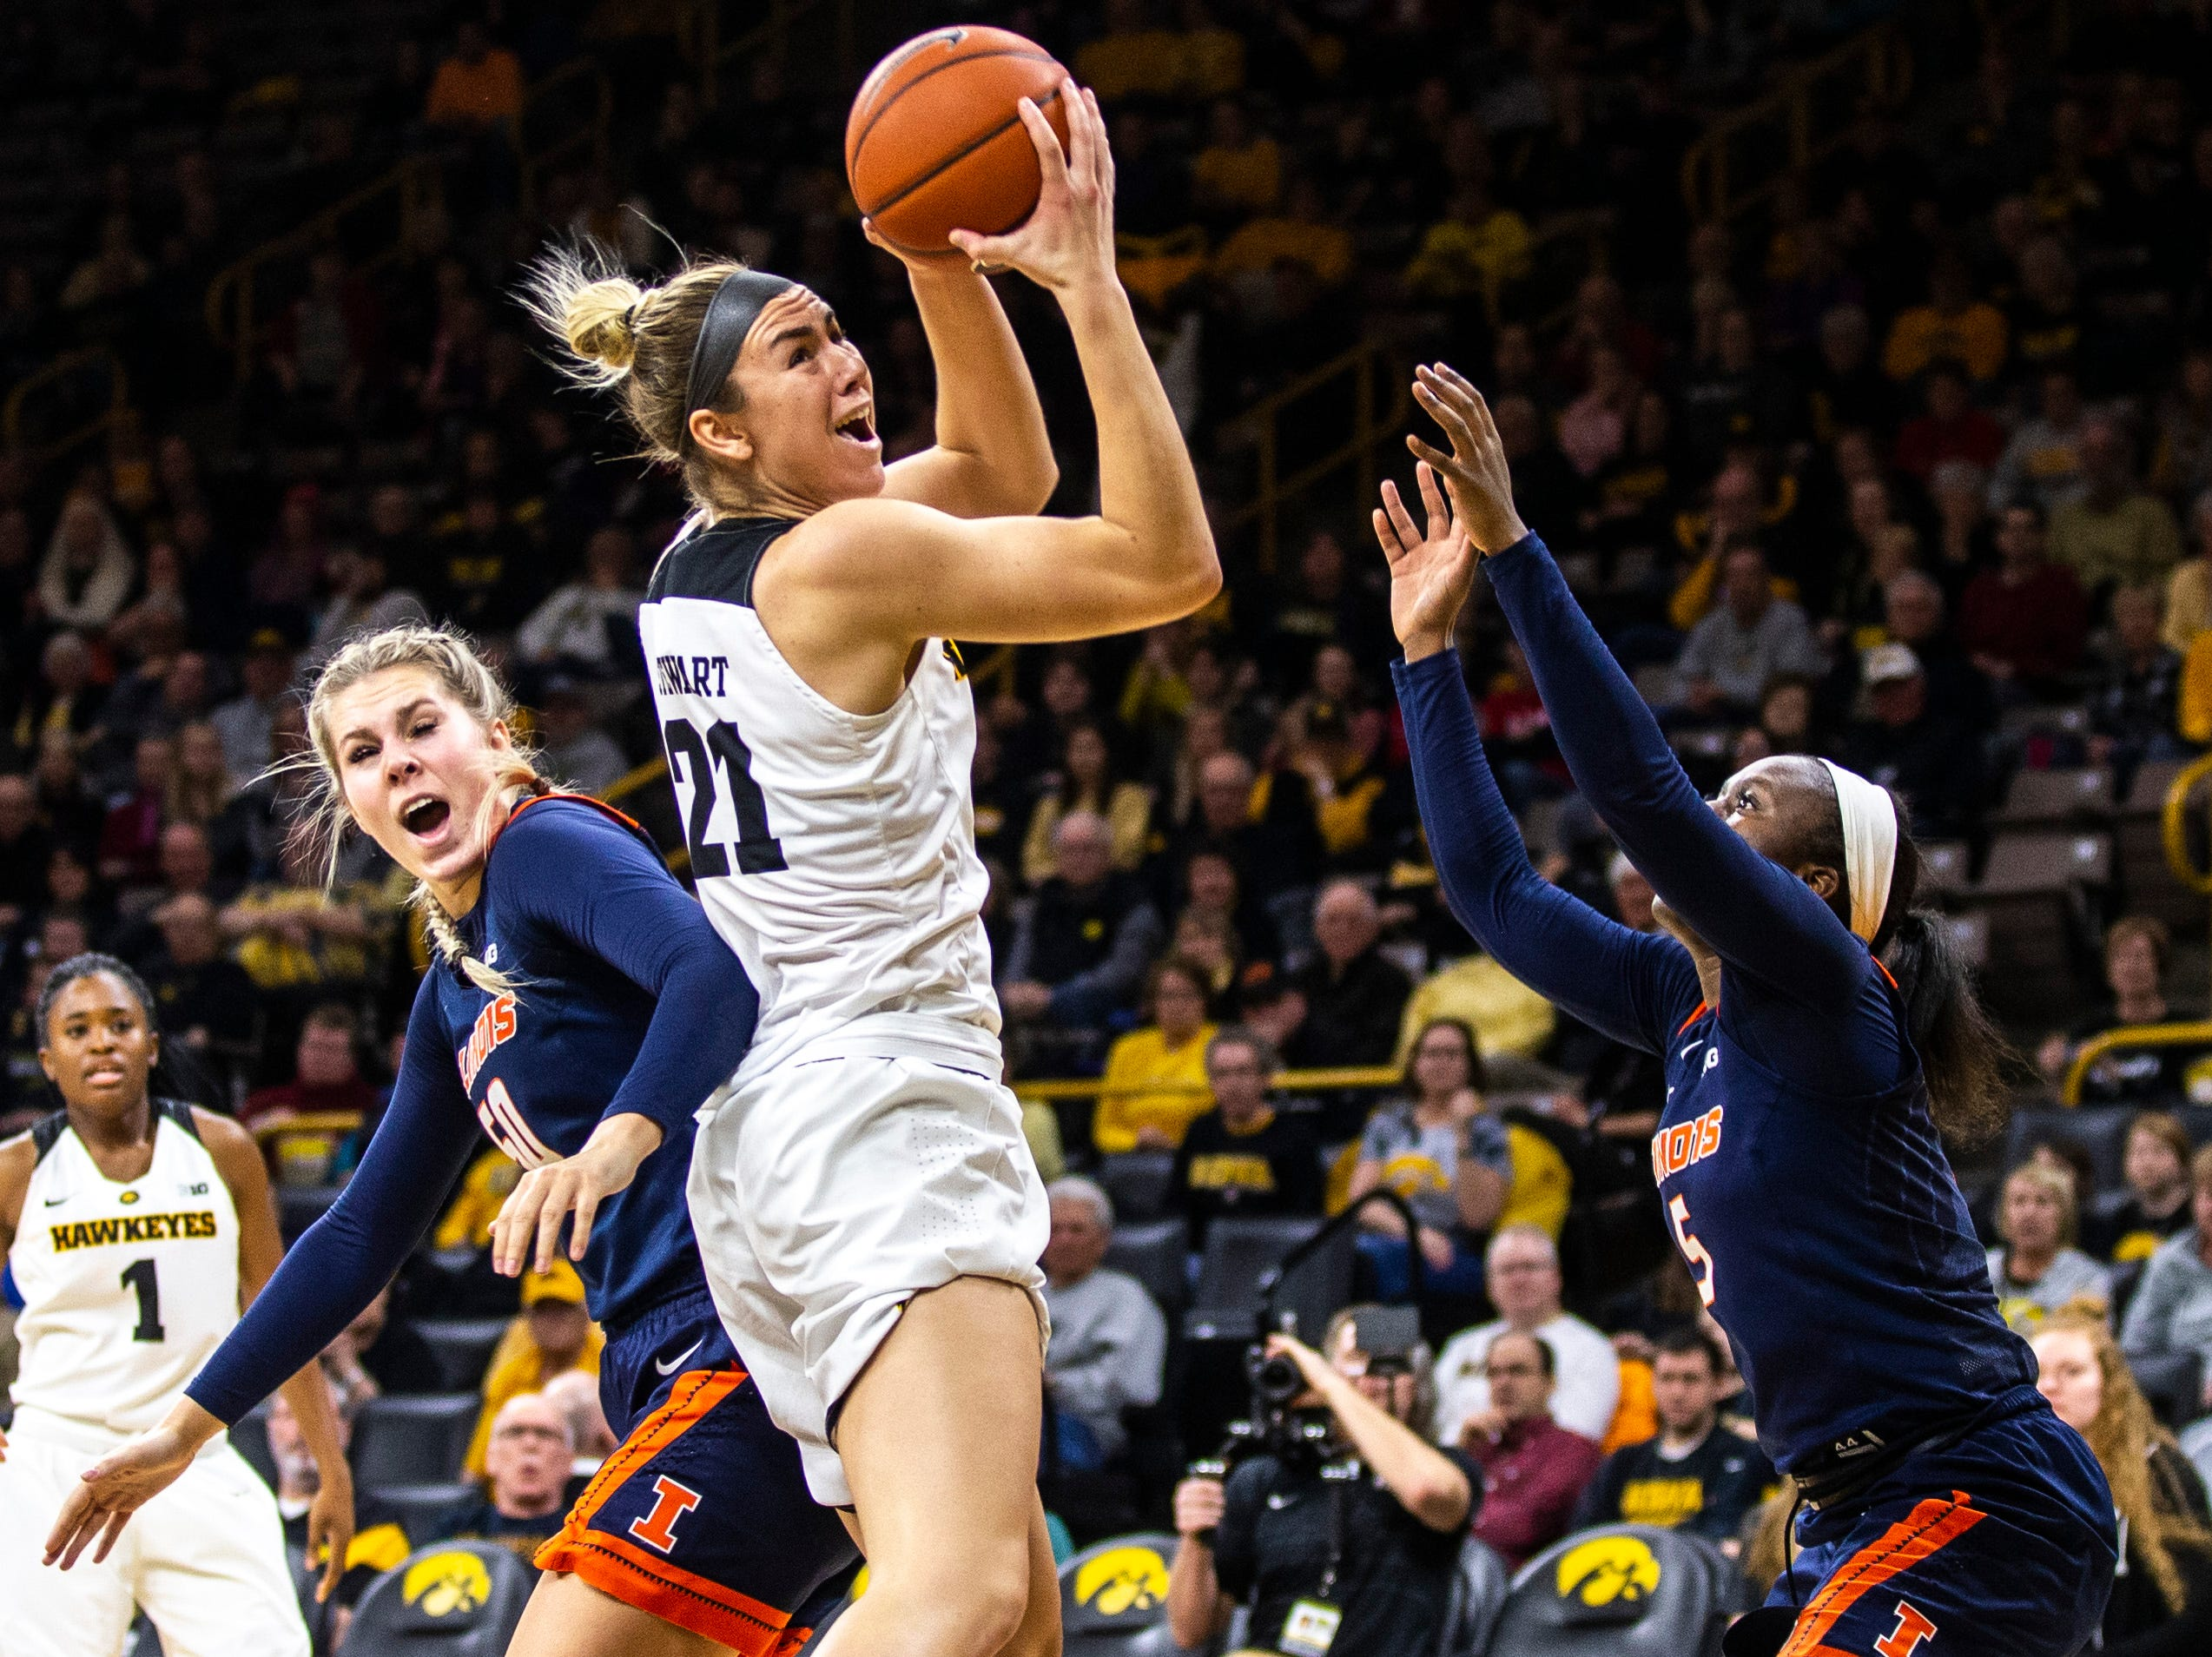 Iowa forward Hannah Stewart (21) goes for a rebound against Illinois forward Ali Andrews, left, and guard Cierra Rice during a NCAA Big Ten Conference women's basketball game on Thursday, Feb. 14, 2019 at Carver-Hawkeye Arena in Iowa City, Iowa.